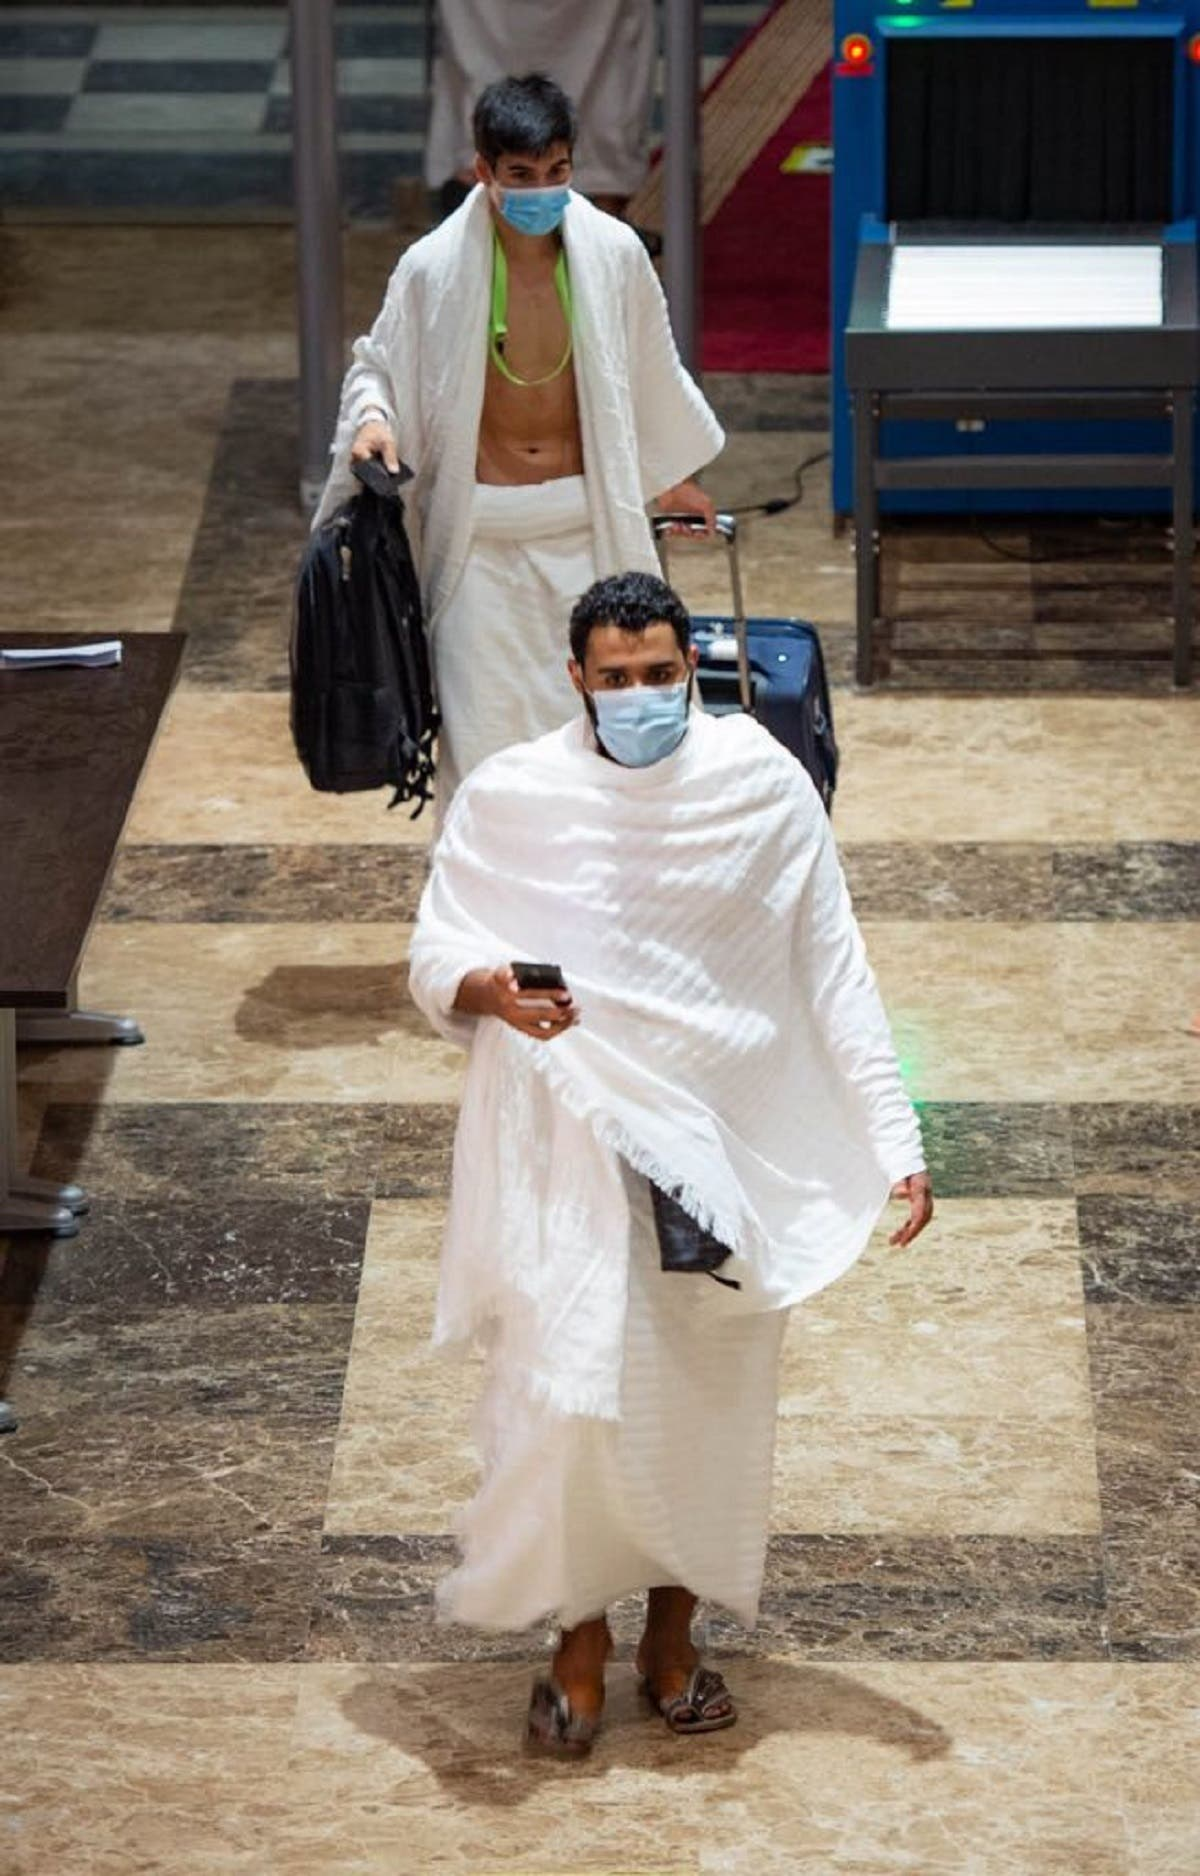 Hajj pilgrims depart from the hotel amid strict coronavirus measures. (SPA / Twitter)